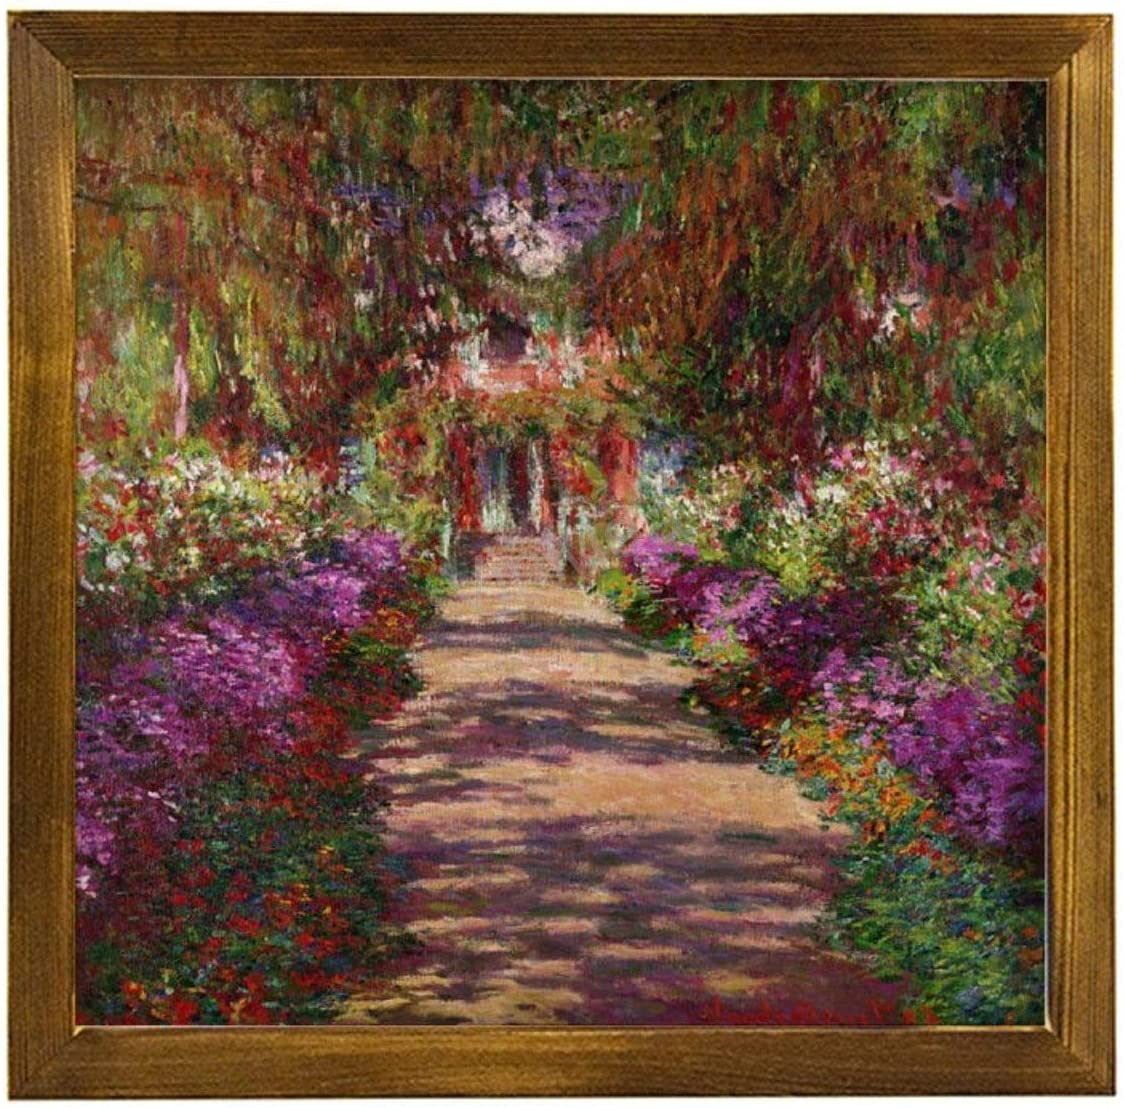 "VinMea Home Decor Wood Sign A-Pathway-in-Monets-Garden-Giverny-Claude-Monet Framed Wood Sign,Rustic Wall Art Sign Wall Hanging Home Decor Wall Art 12""X12"""